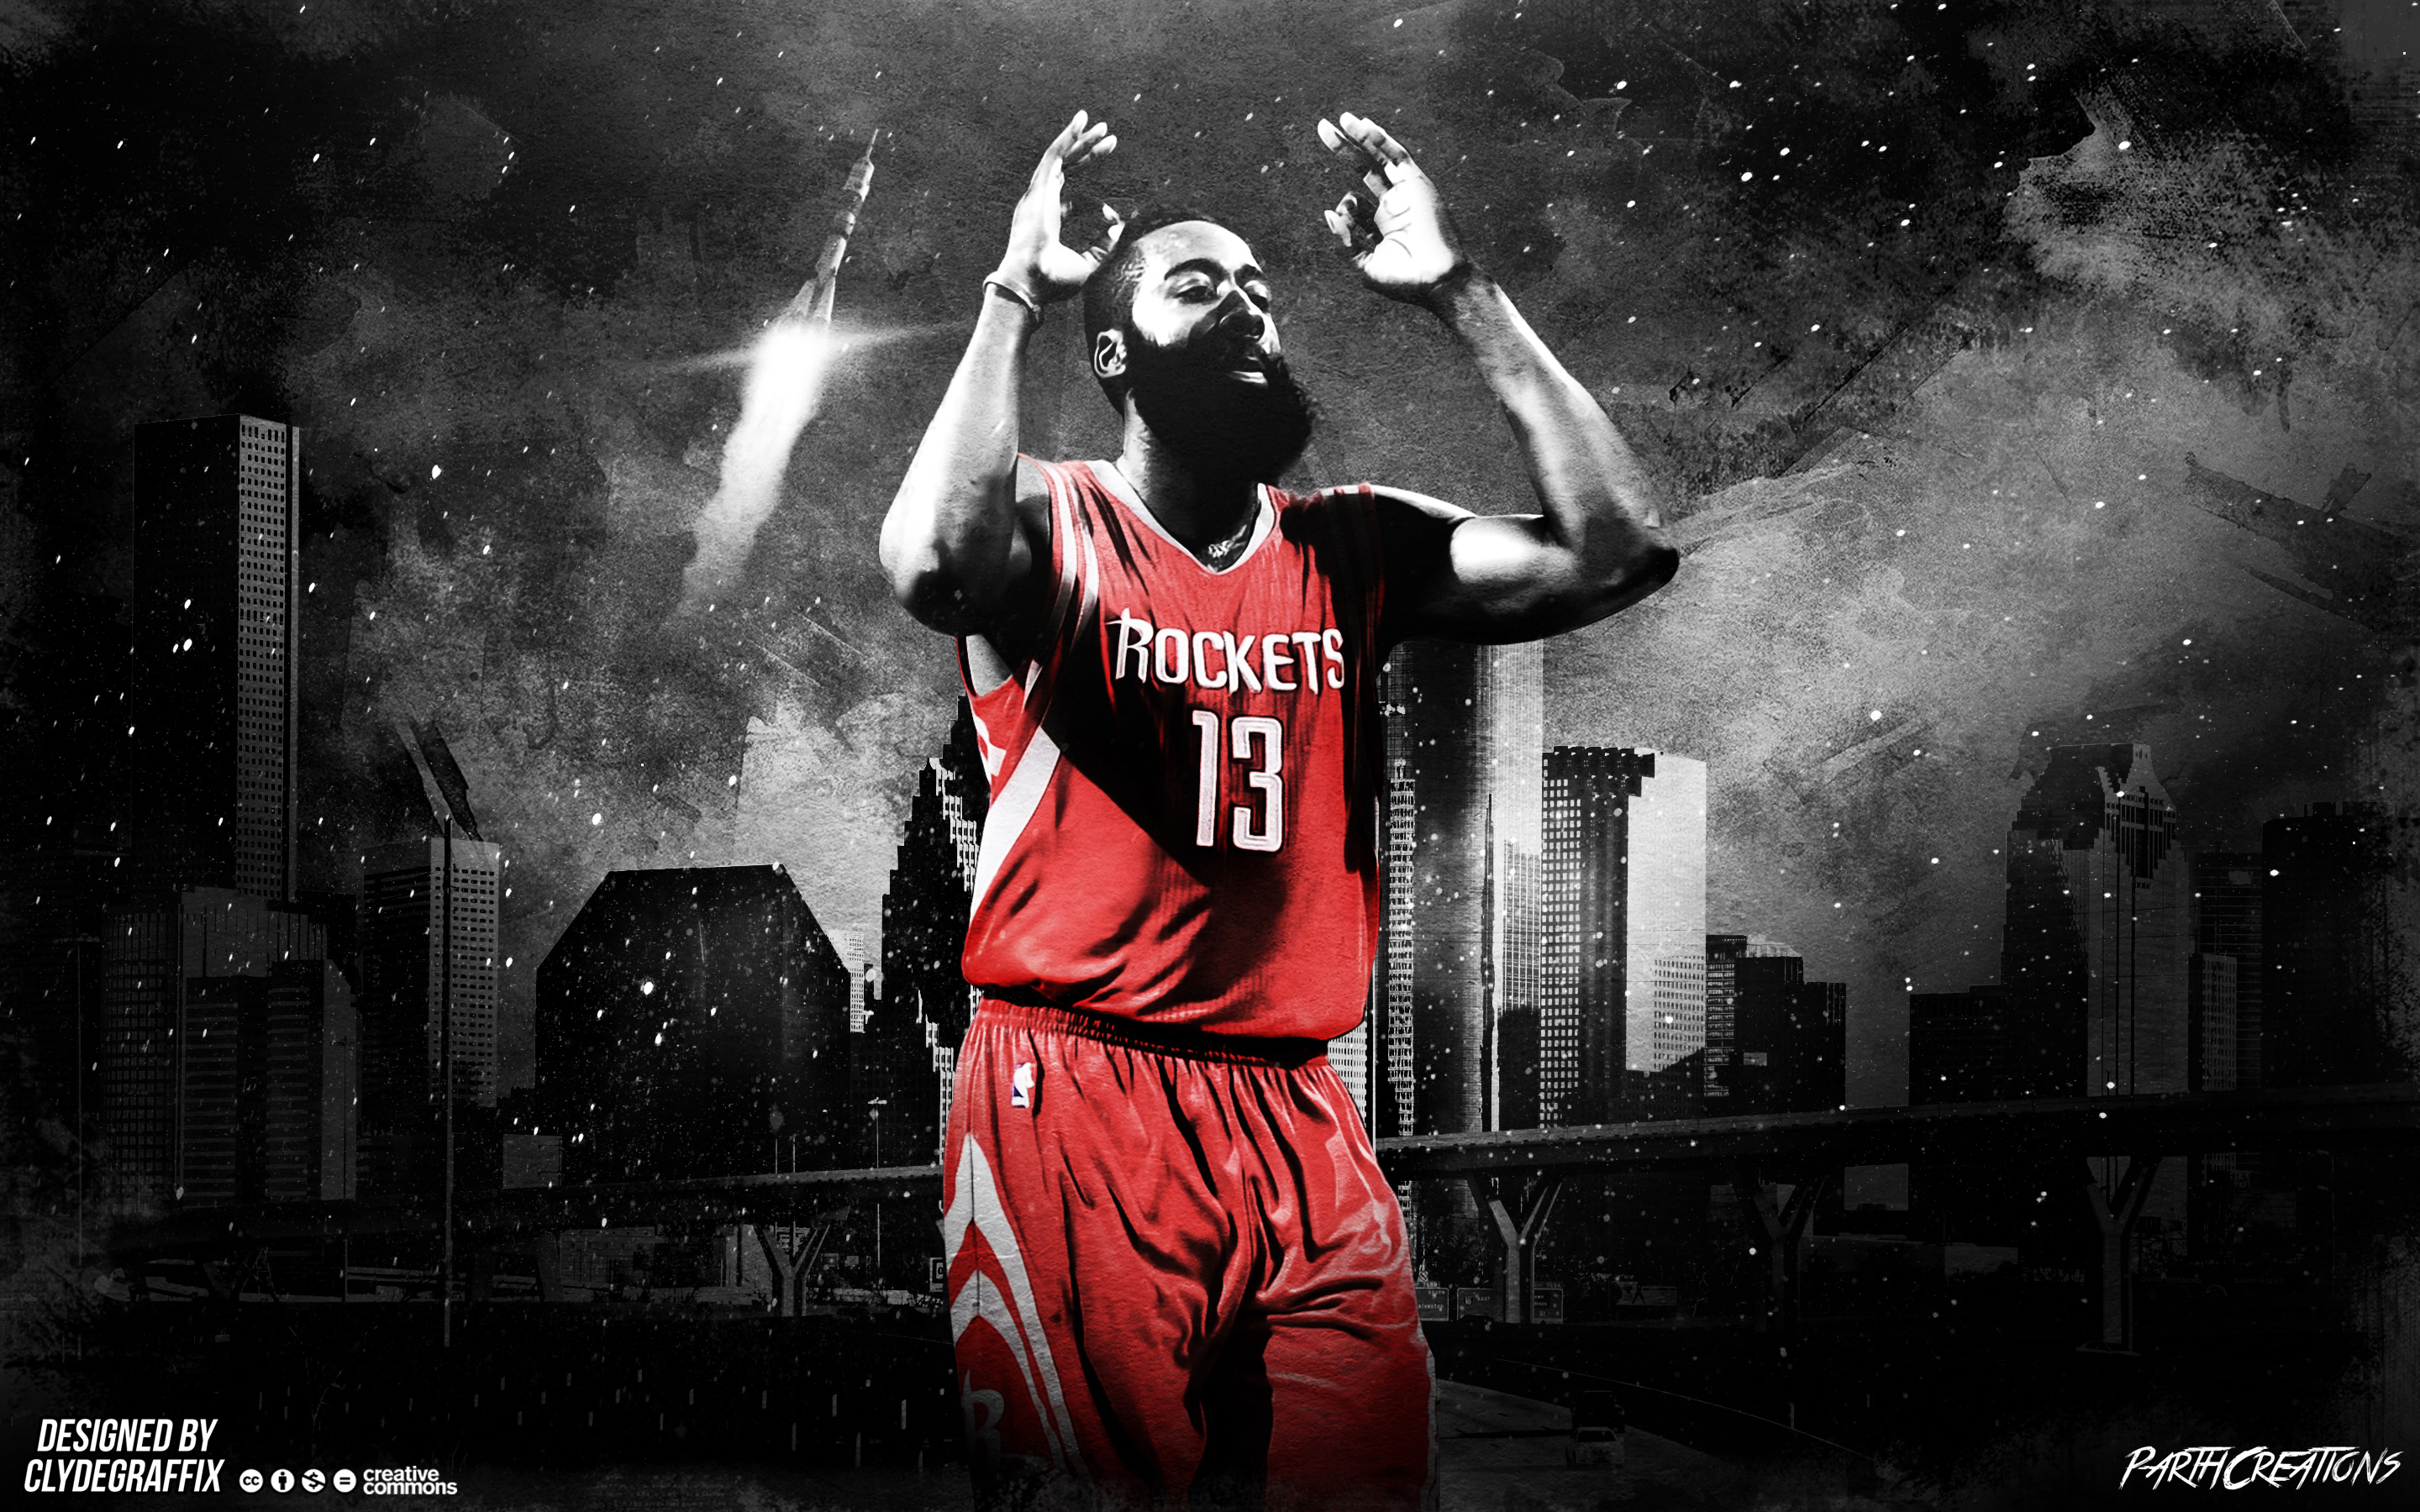 James Harden Rockets 2015 2880x1800 Wallpaper